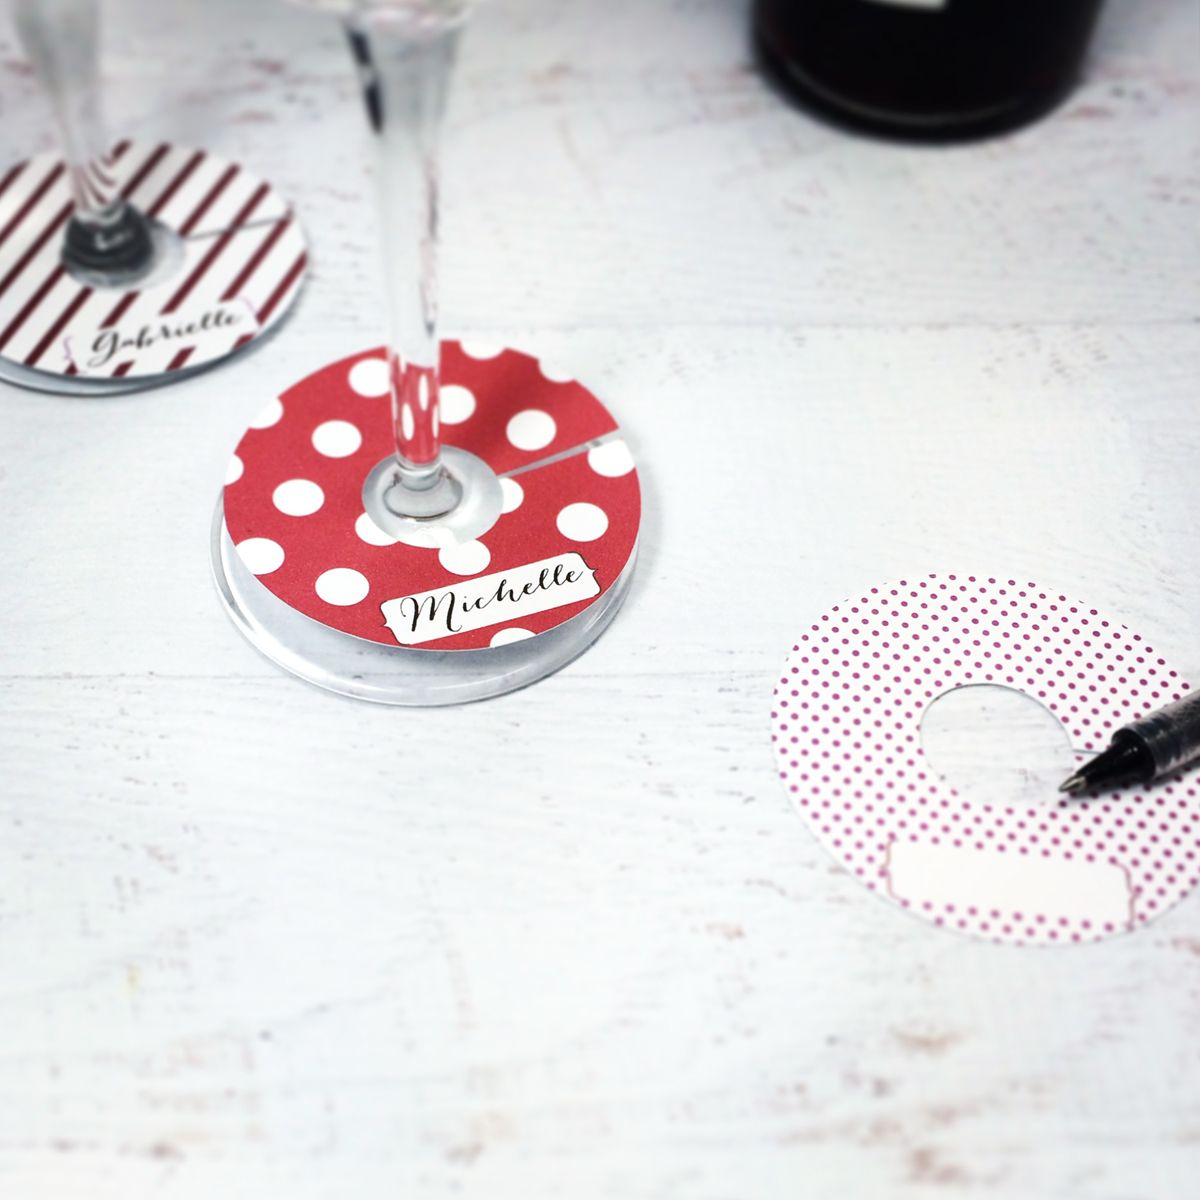 photo about Printable Wine Glass Tags called Totally free Printable Wine Gl Markers for Your Wine Themed